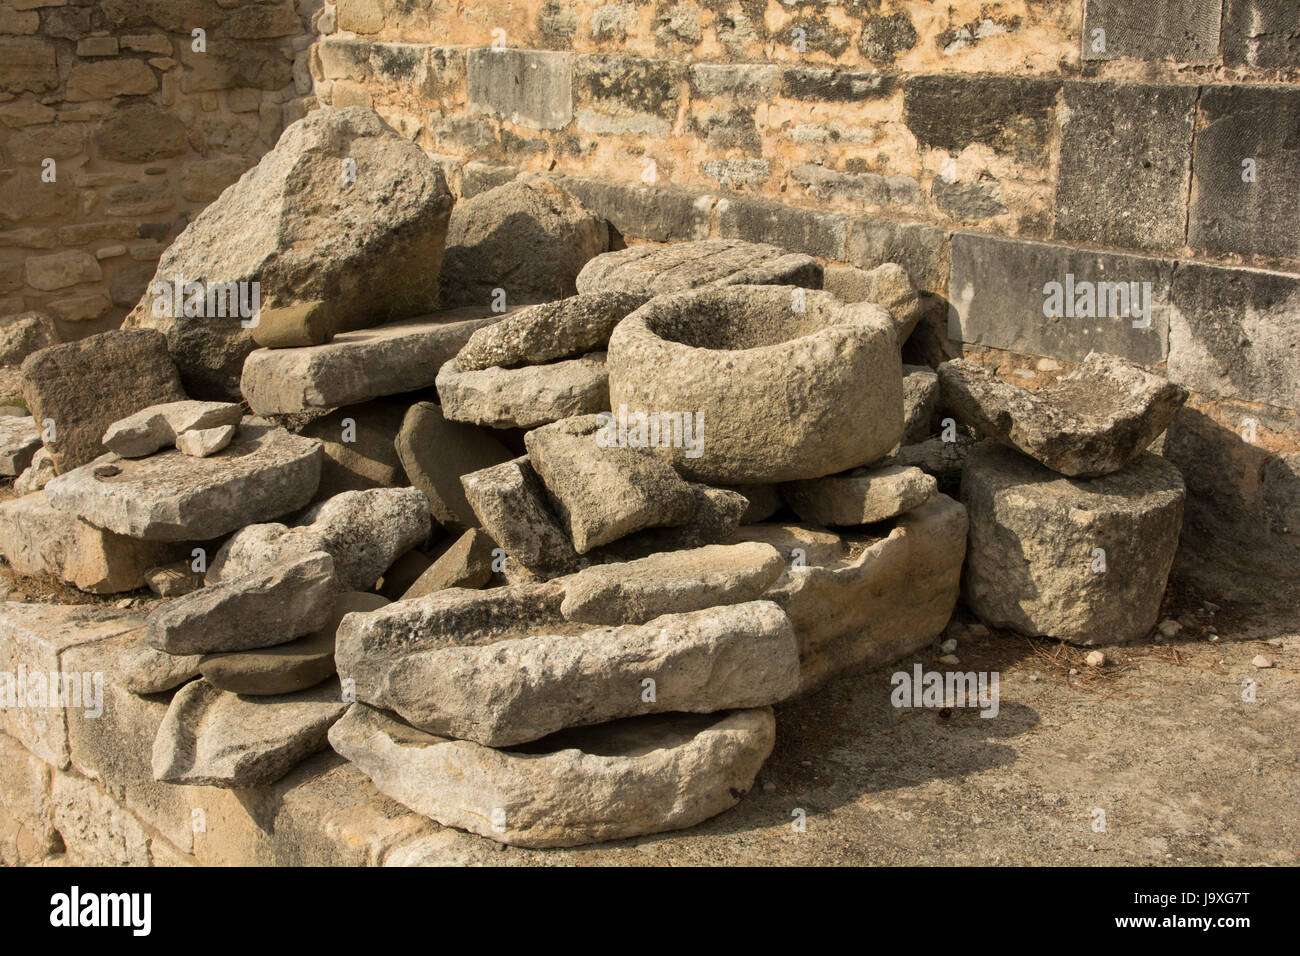 Phaistos was an Minoan palace and city iin southern central Crete with settlements starting around 4000 BC and lasting for around 4000 years. Stock Photo